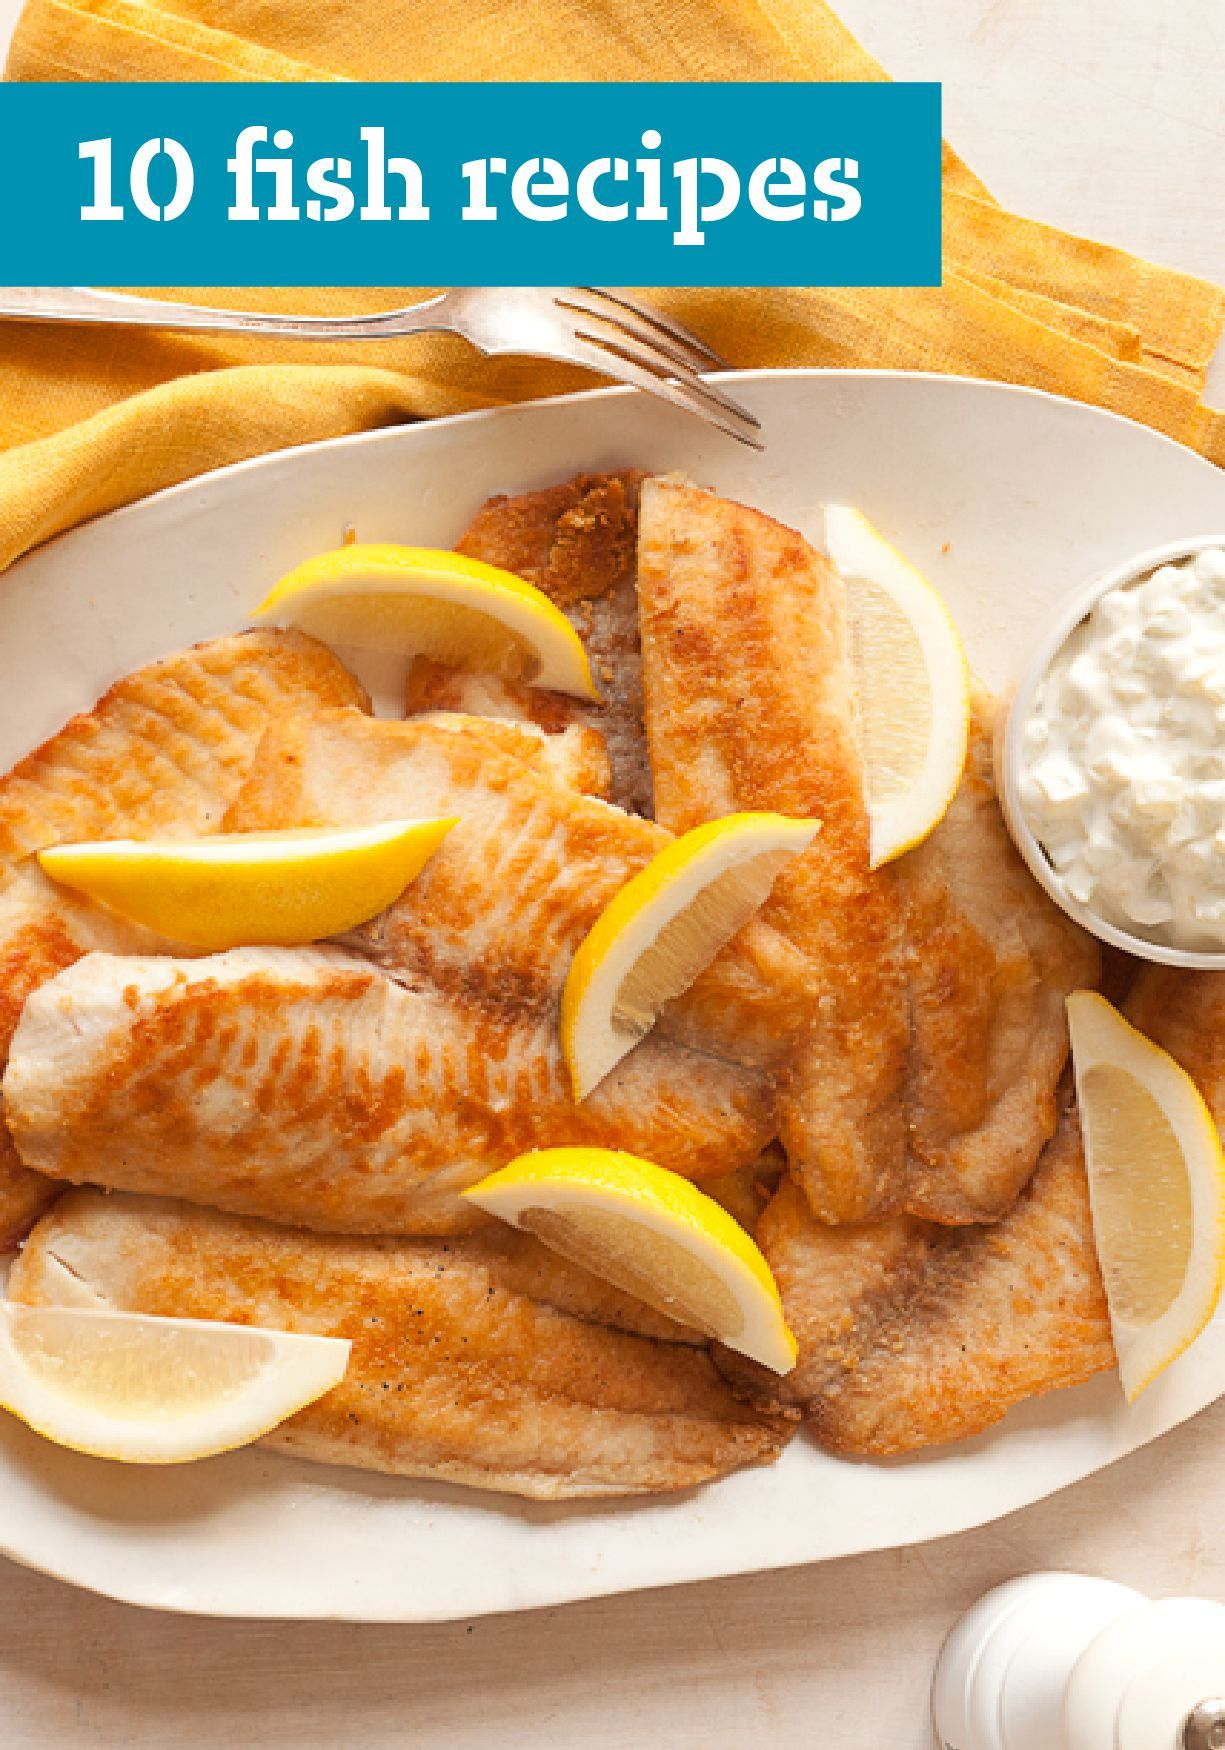 10 fish recipes from easy grilled fish to hearty seafood for Grilled cod fish recipe